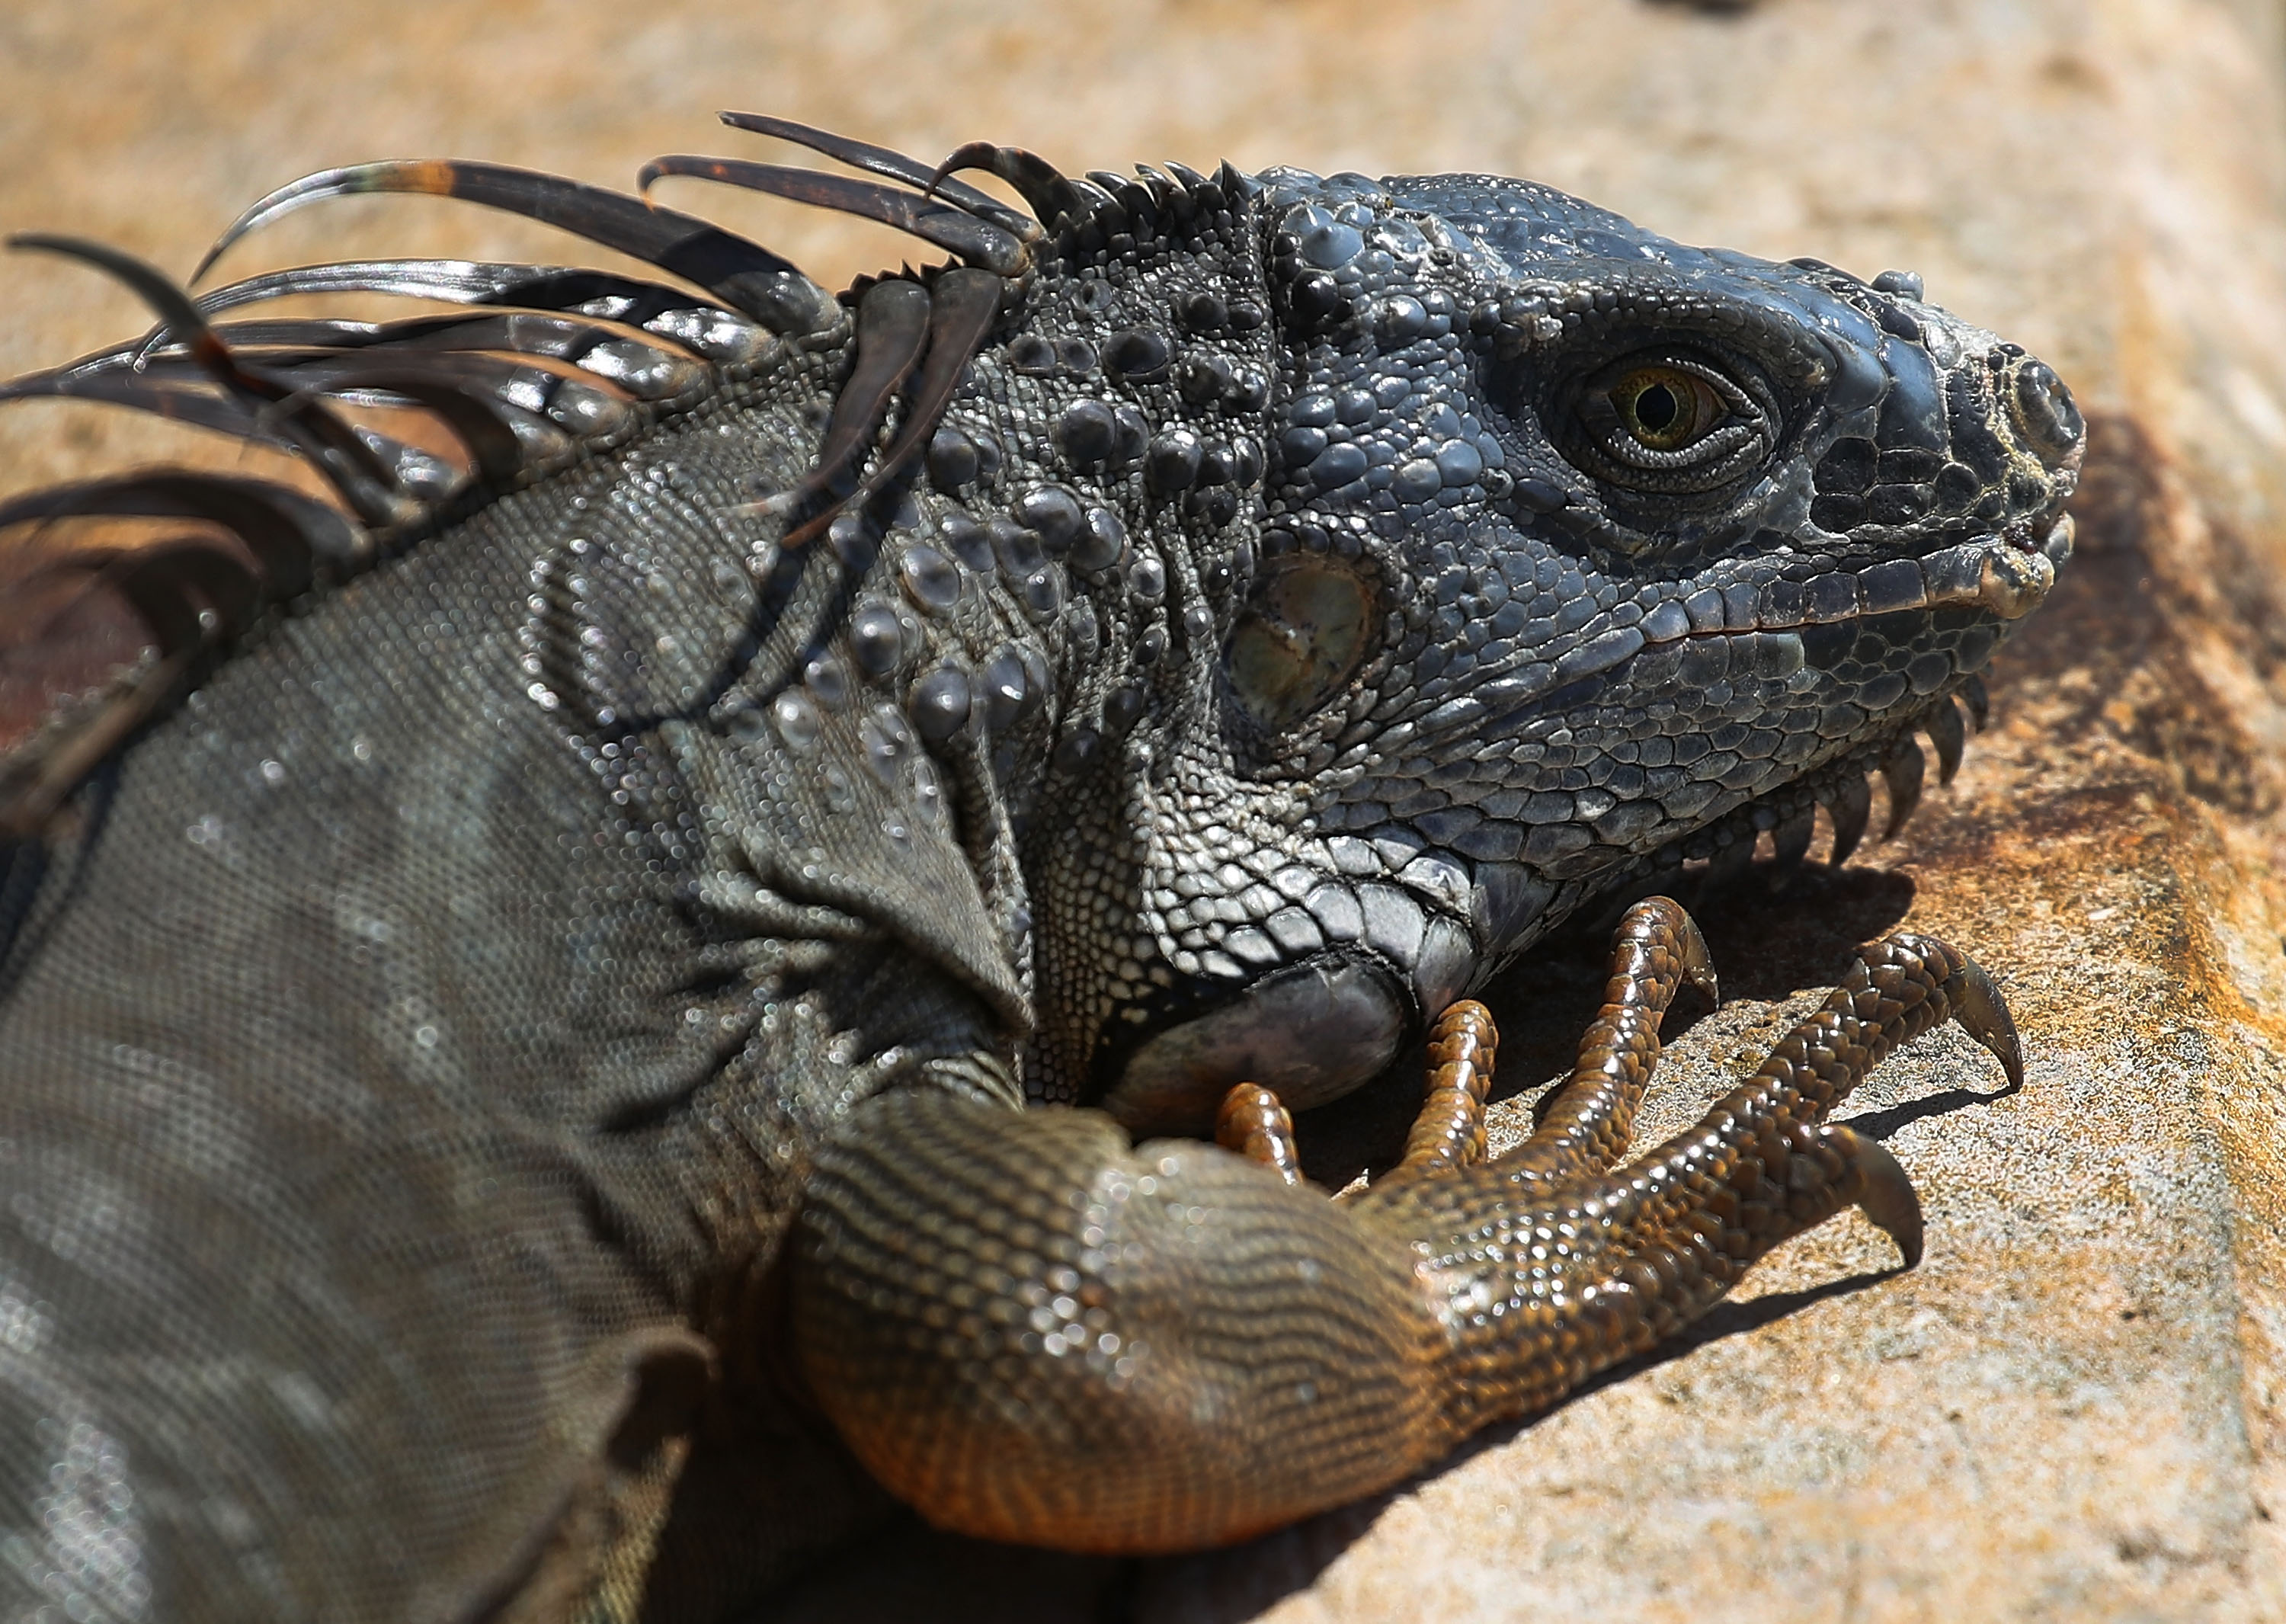 An iguana is seen as the Florida Fish and Wildlife Conservation Commission continues its efforts to try and control the invasive species on March 13, 2018 in Miami, Florida. The commission has teams of people that are trying to eliminate the reptiles by killing them, which would prevent them from eating native plants and wildlife as well as disturbing the natural Florida habitat that they are living in. (Photo by Joe Raedle/Getty Images)